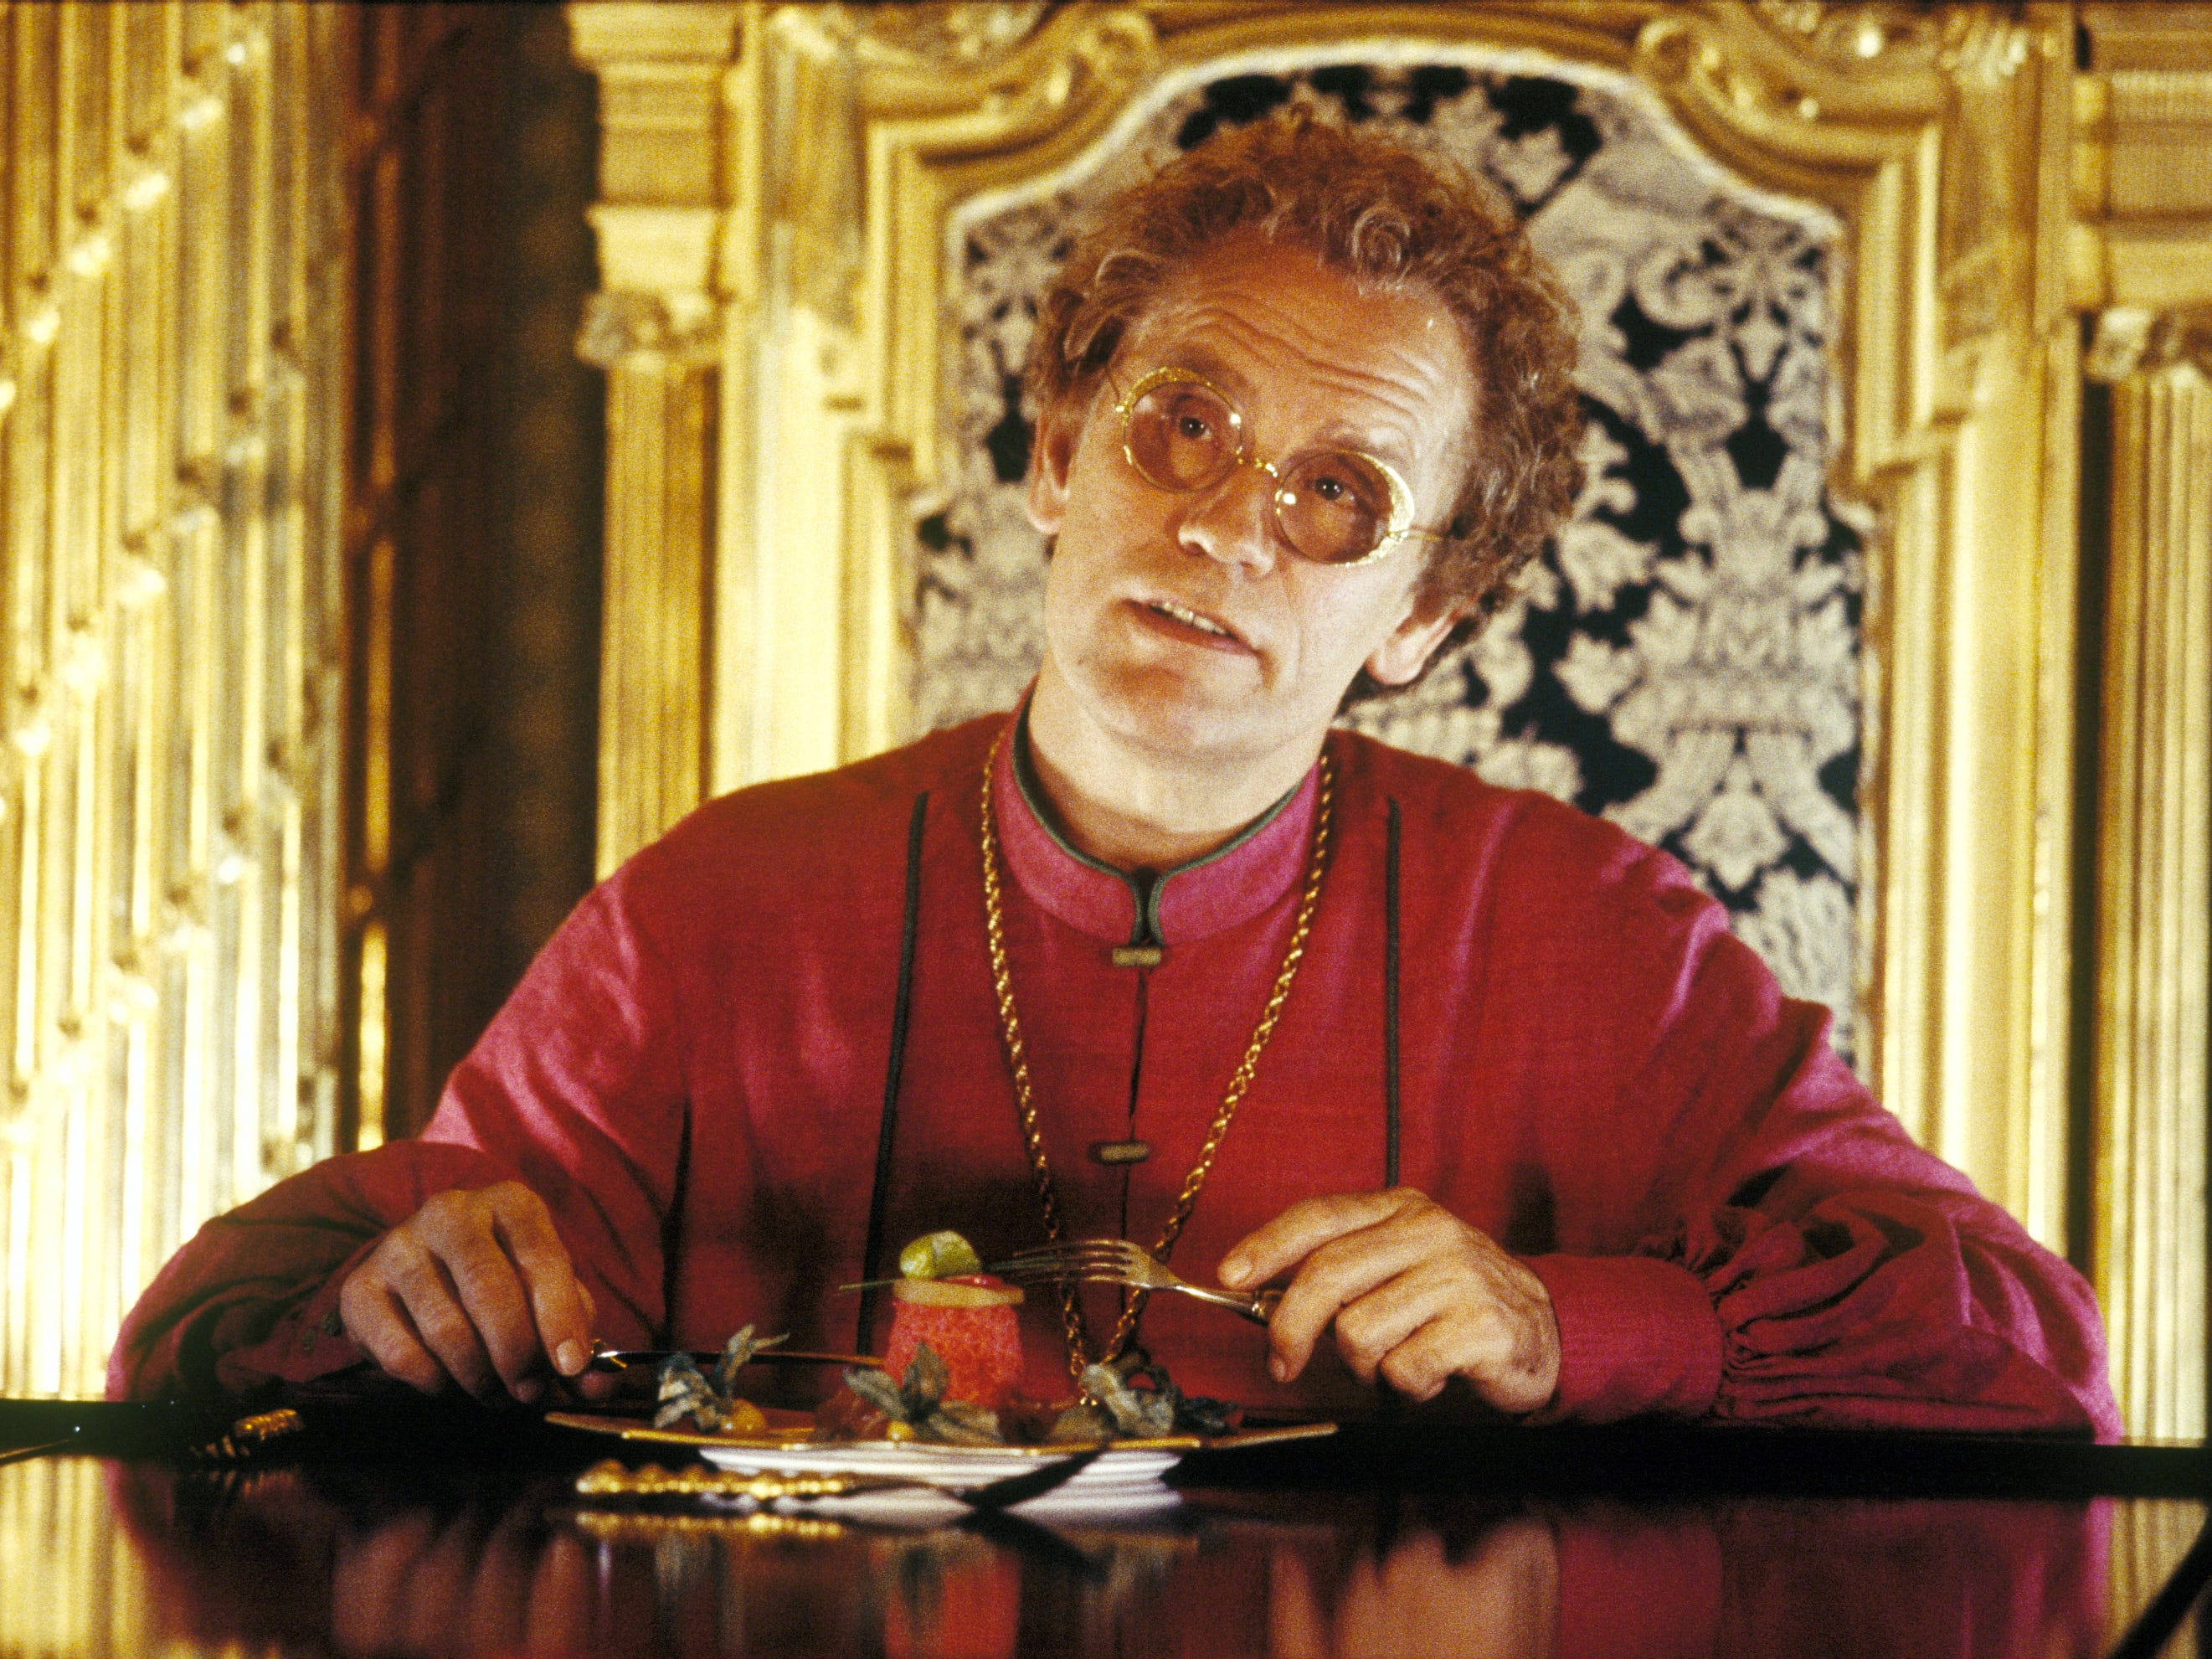 Humma Kavula (John Malkovich) in a scene from the motion picture Hitchhiker's Guide To The Galaxy.  --- DATE TAKEN: rec'd 04/05  By Laurie Sparham   Touchstone Pictures        HO      - handout   ORG XMIT: ZX34372